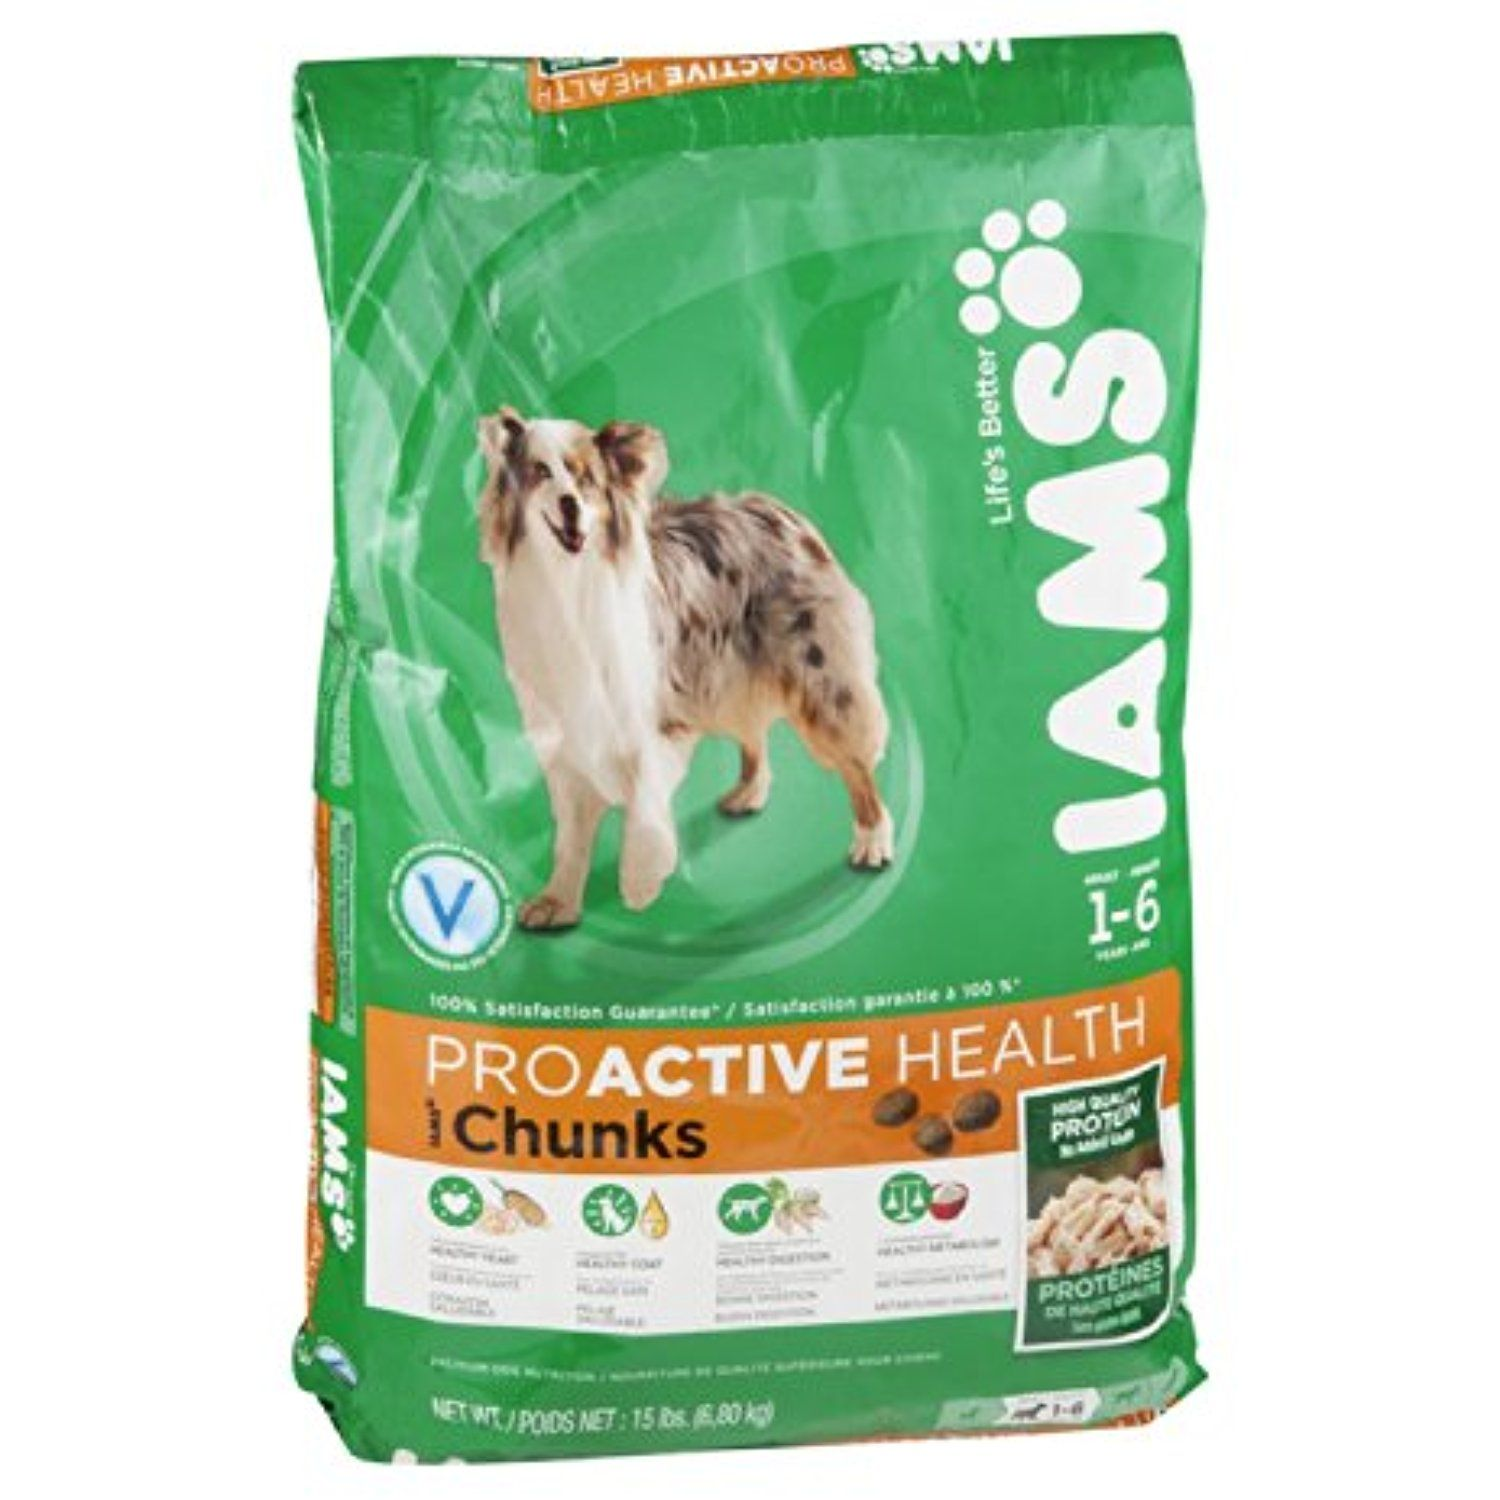 Iams Chunk Dog Food You Can Click Image To Review More Details This Is An Affiliate Link And I Receive A Co Iams Dog Food Eukanuba Dog Food Dog Food Brands